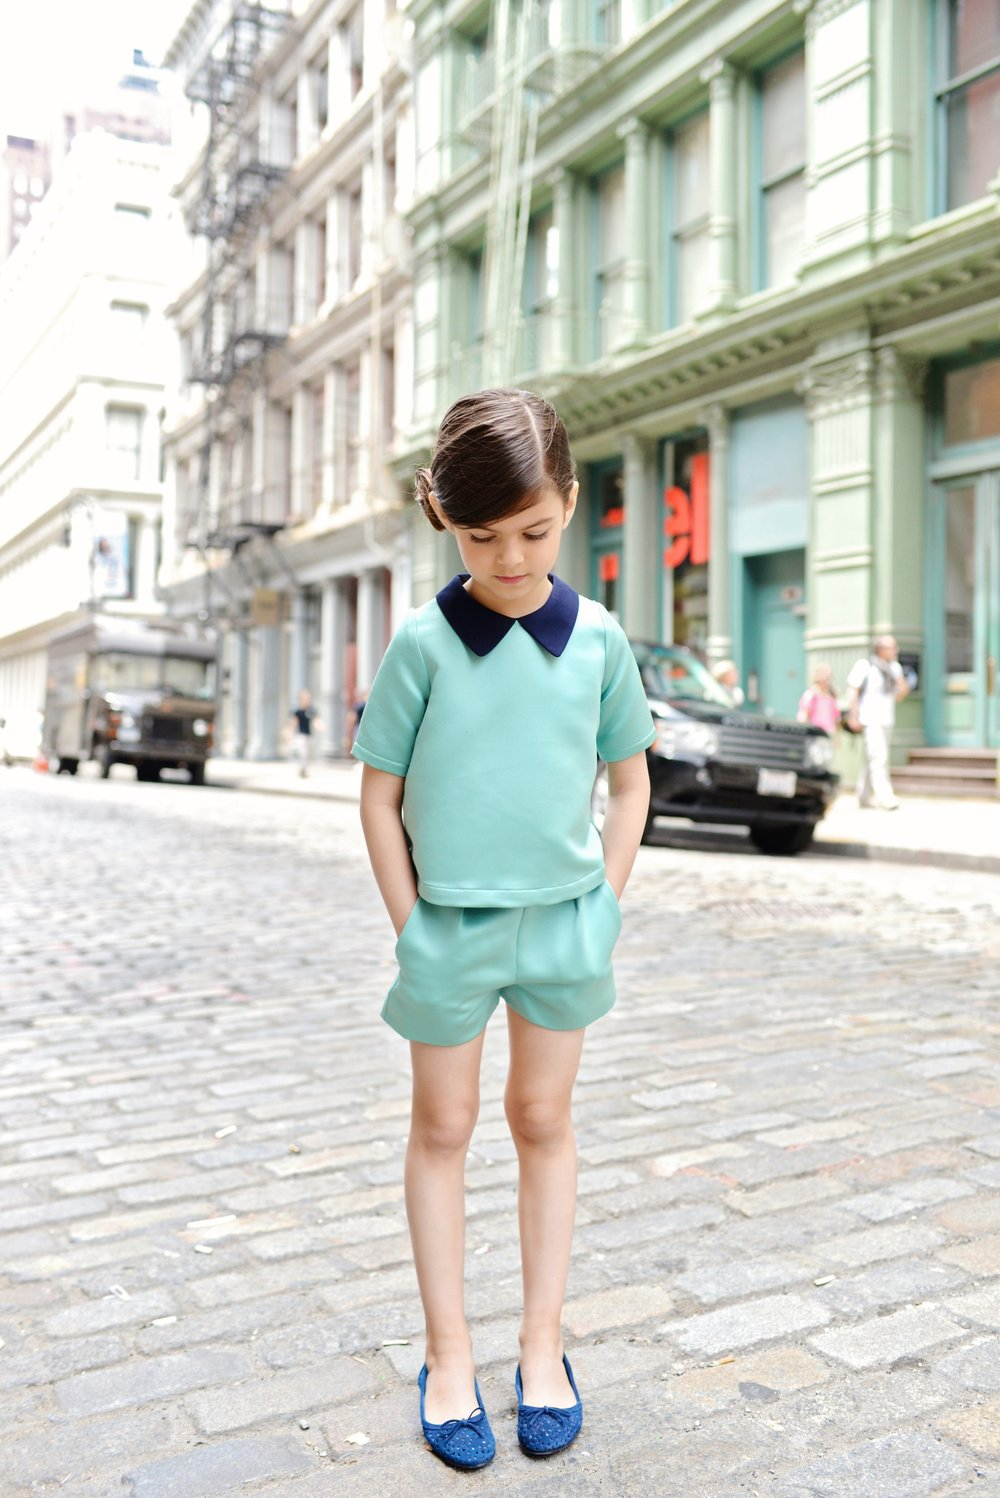 Enfant+Street+Style+by+Gina+Kim+Photography-65.jpeg